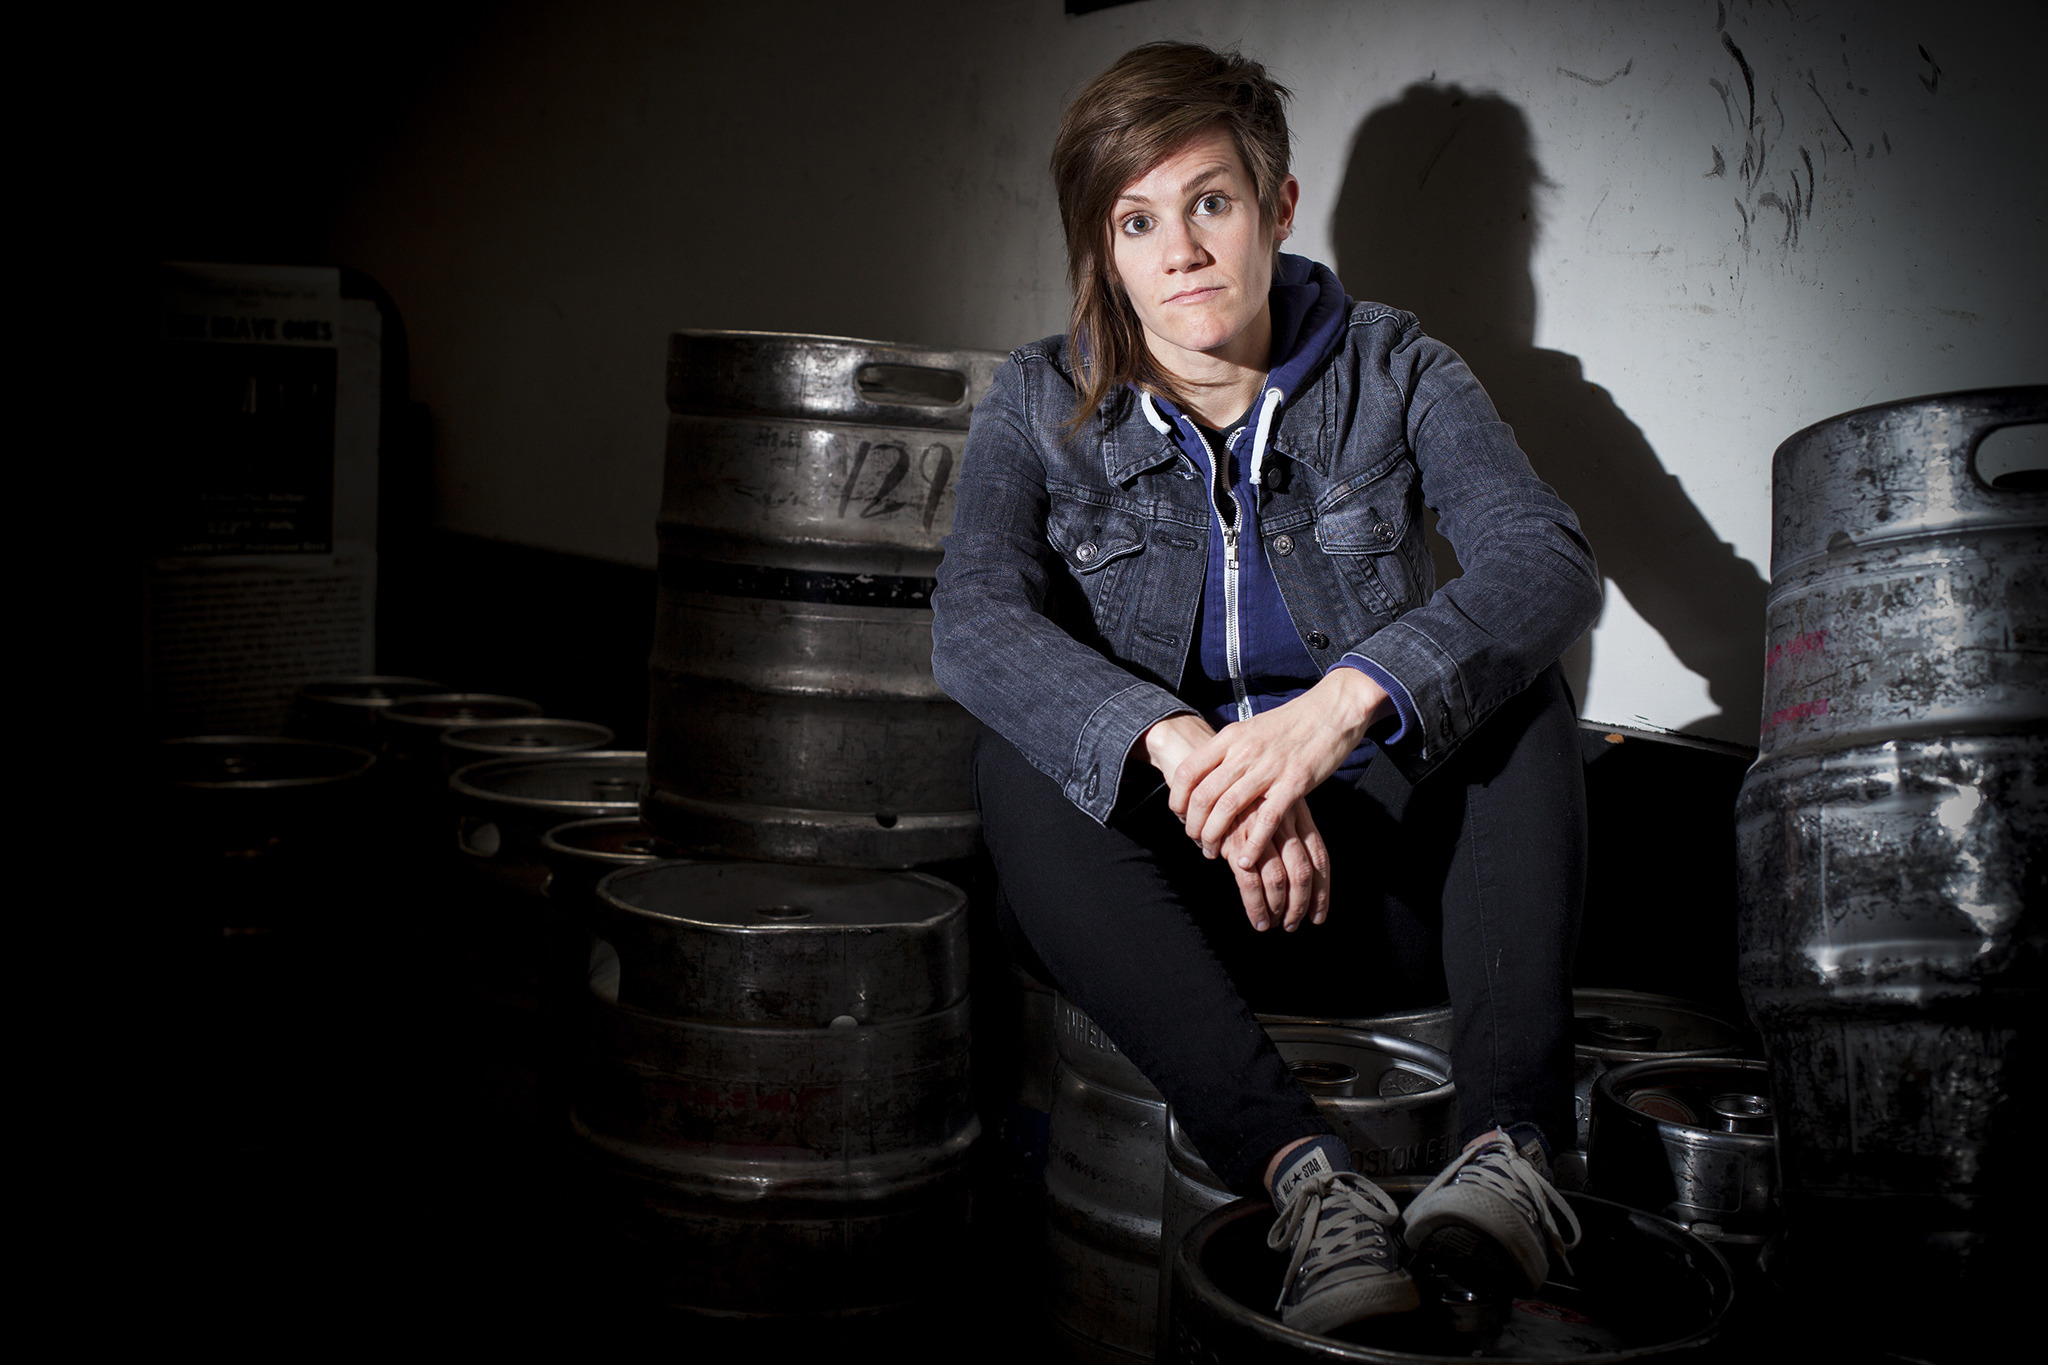 Put Your Hands Together with Cameron Esposito